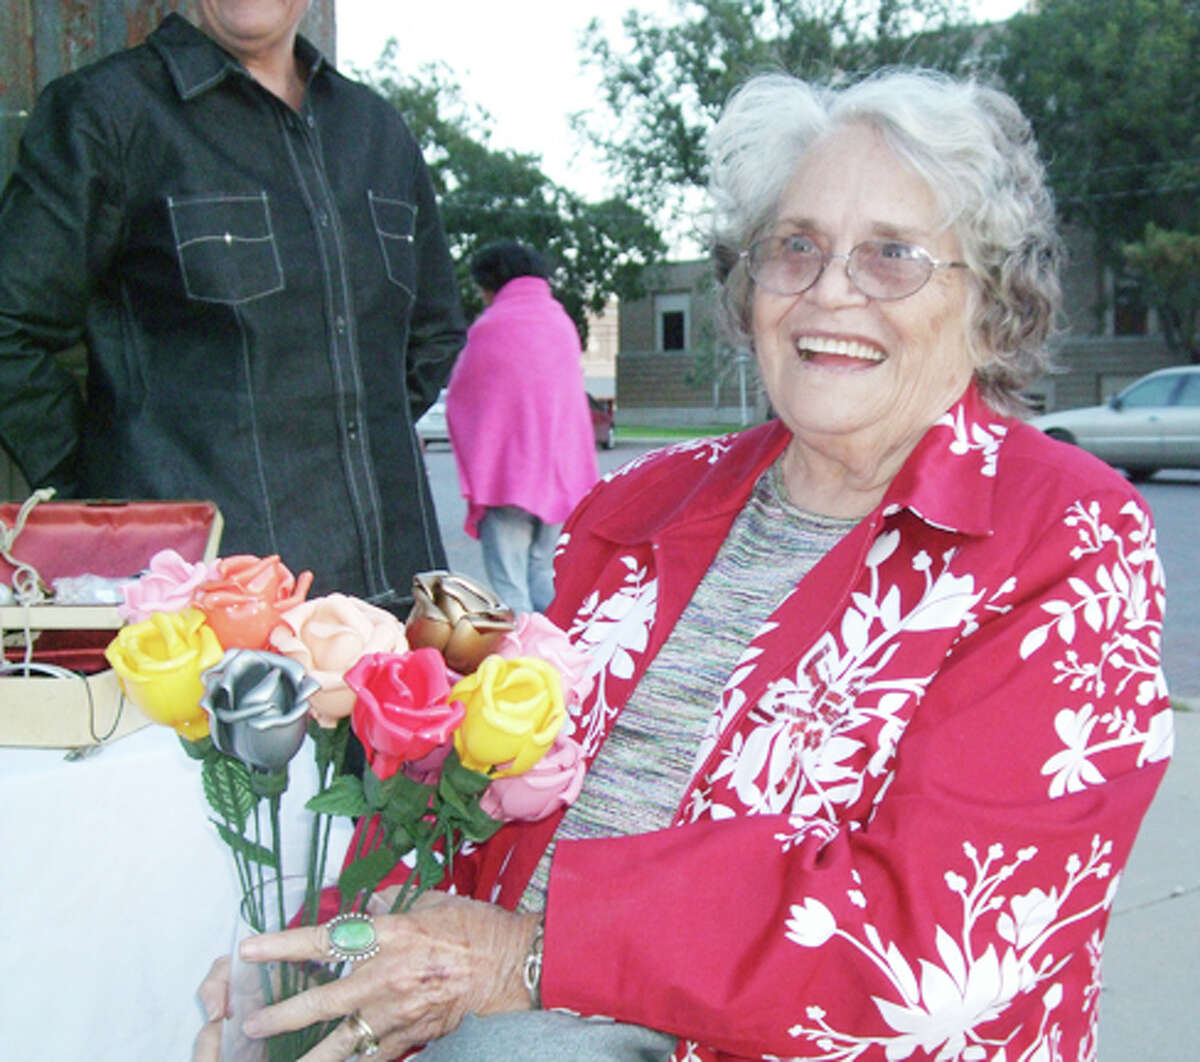 Sandy Hollars, of Hand Made Creations by Gram, sits in front of roses that her daughter crafted from plastic spoons at the first Artwalk Plainview, Oct. 5, 2012.